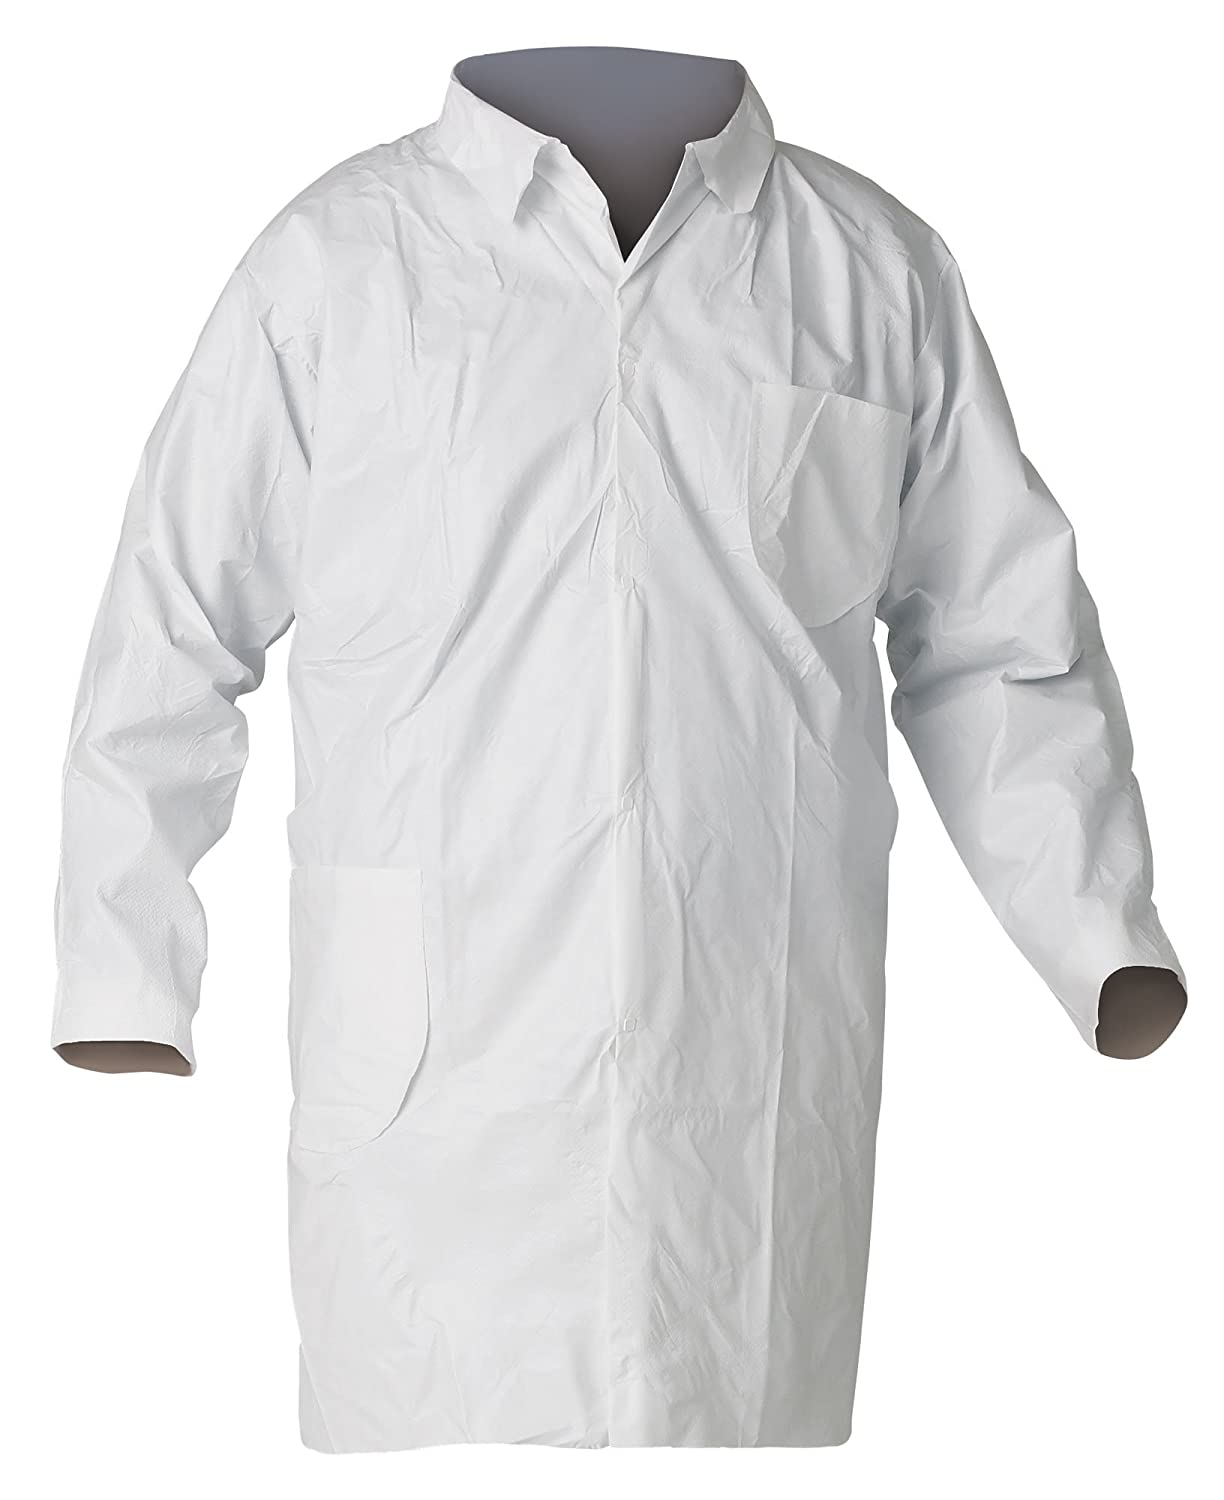 Kimberly-Clark KleenGuard A40 Microporous Film Laminate Liquid and Particle Protection Lab Coat with Chest and Hip Pocket, 3X-Large, White (Case: Industrial & Scientific